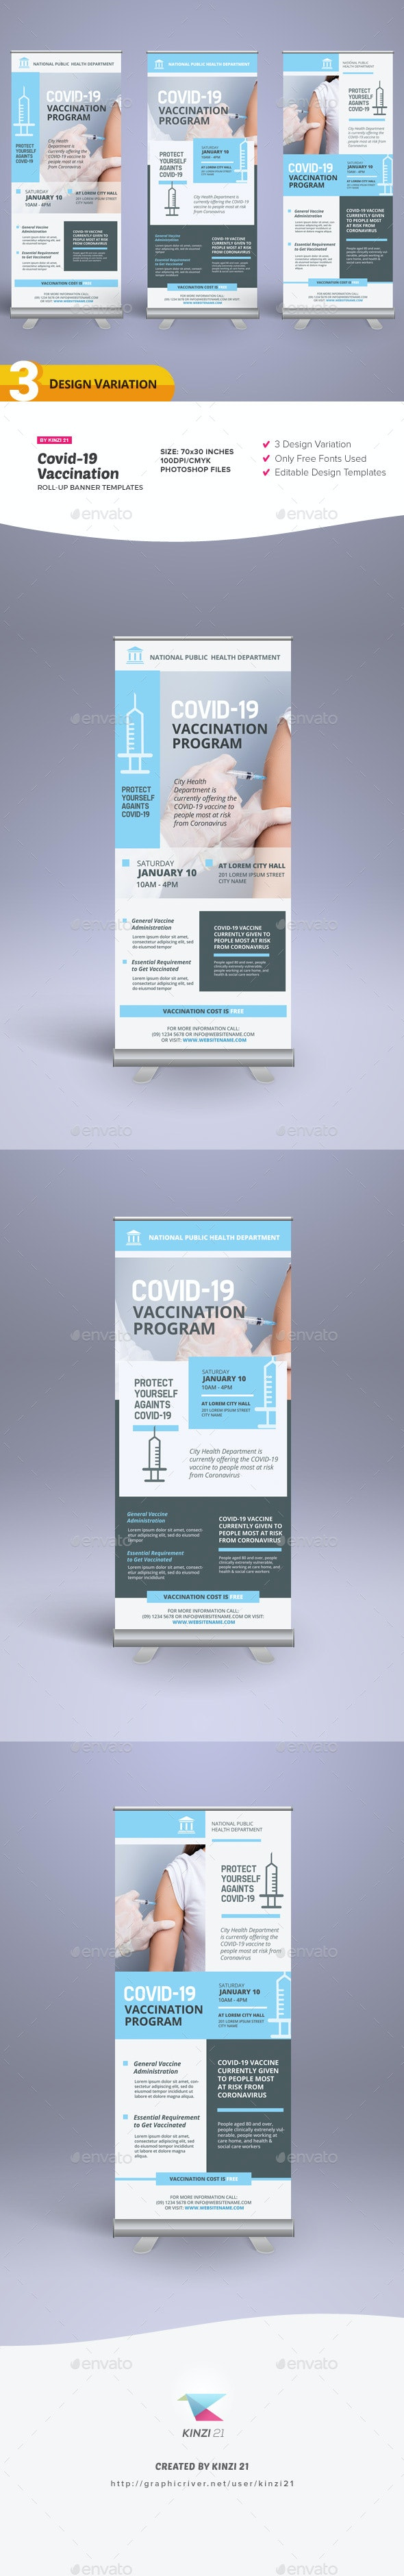 Covid-19 Vaccination Roll-up Banner Templates - Signage Print Templates